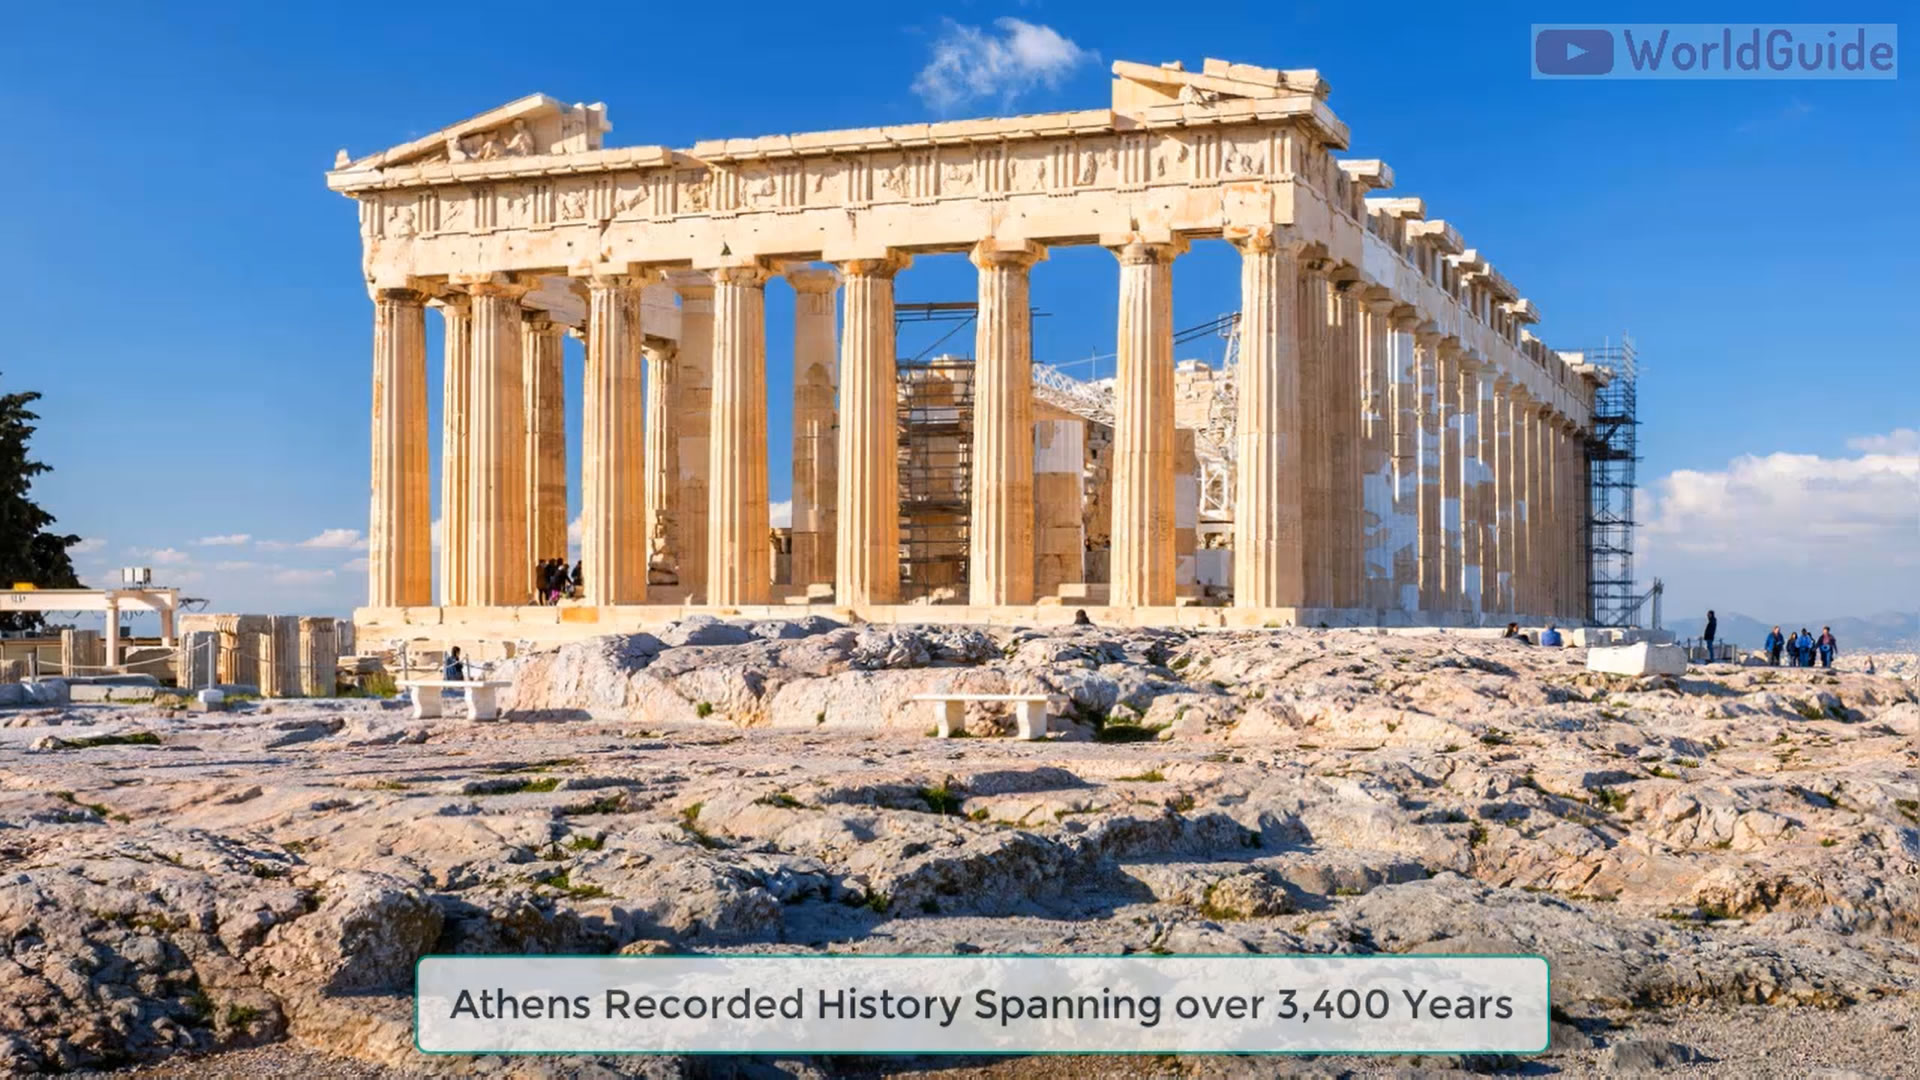 Athens Recorded History Spanning over 3,400 Years